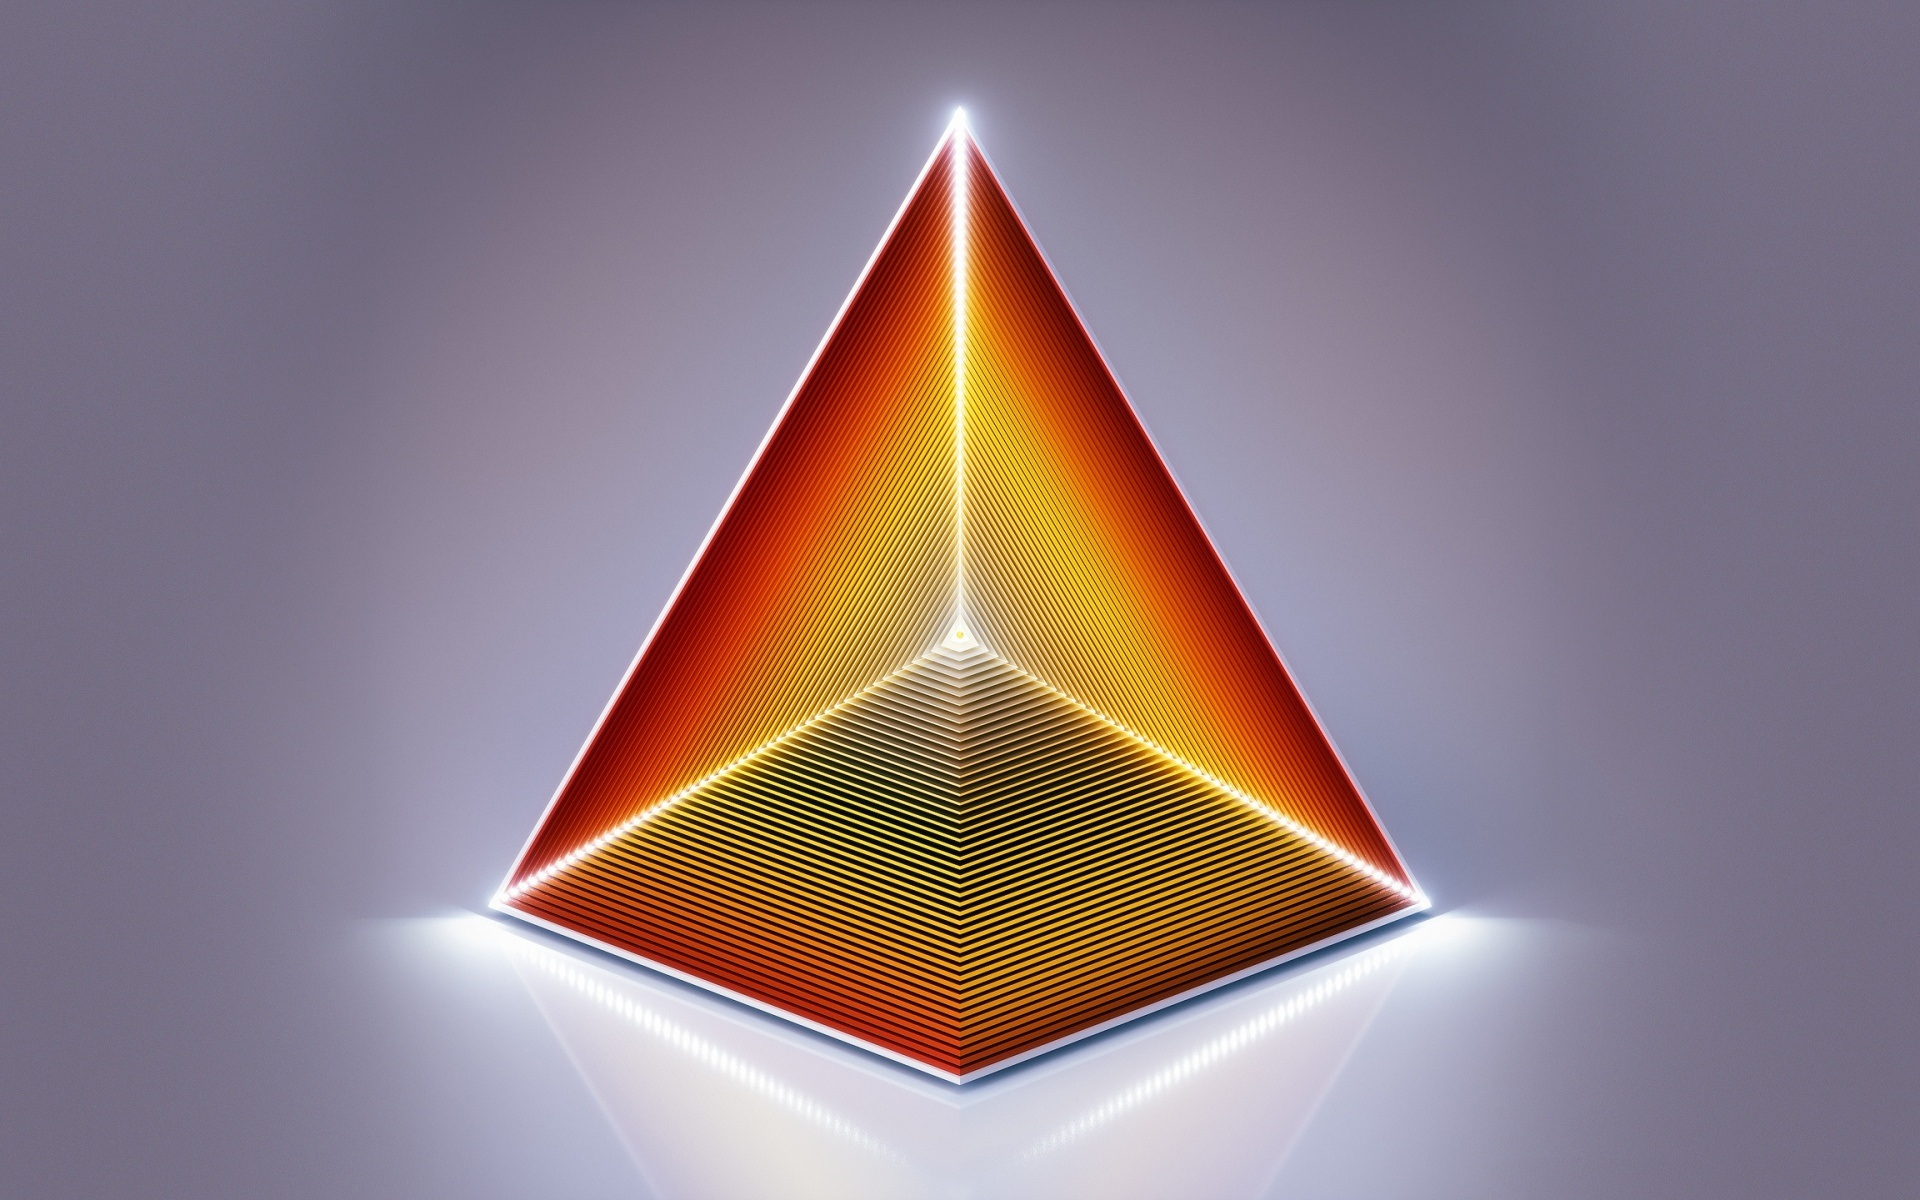 Wallpaper Abstract pyramid, triangle, design 1920x1200 HD